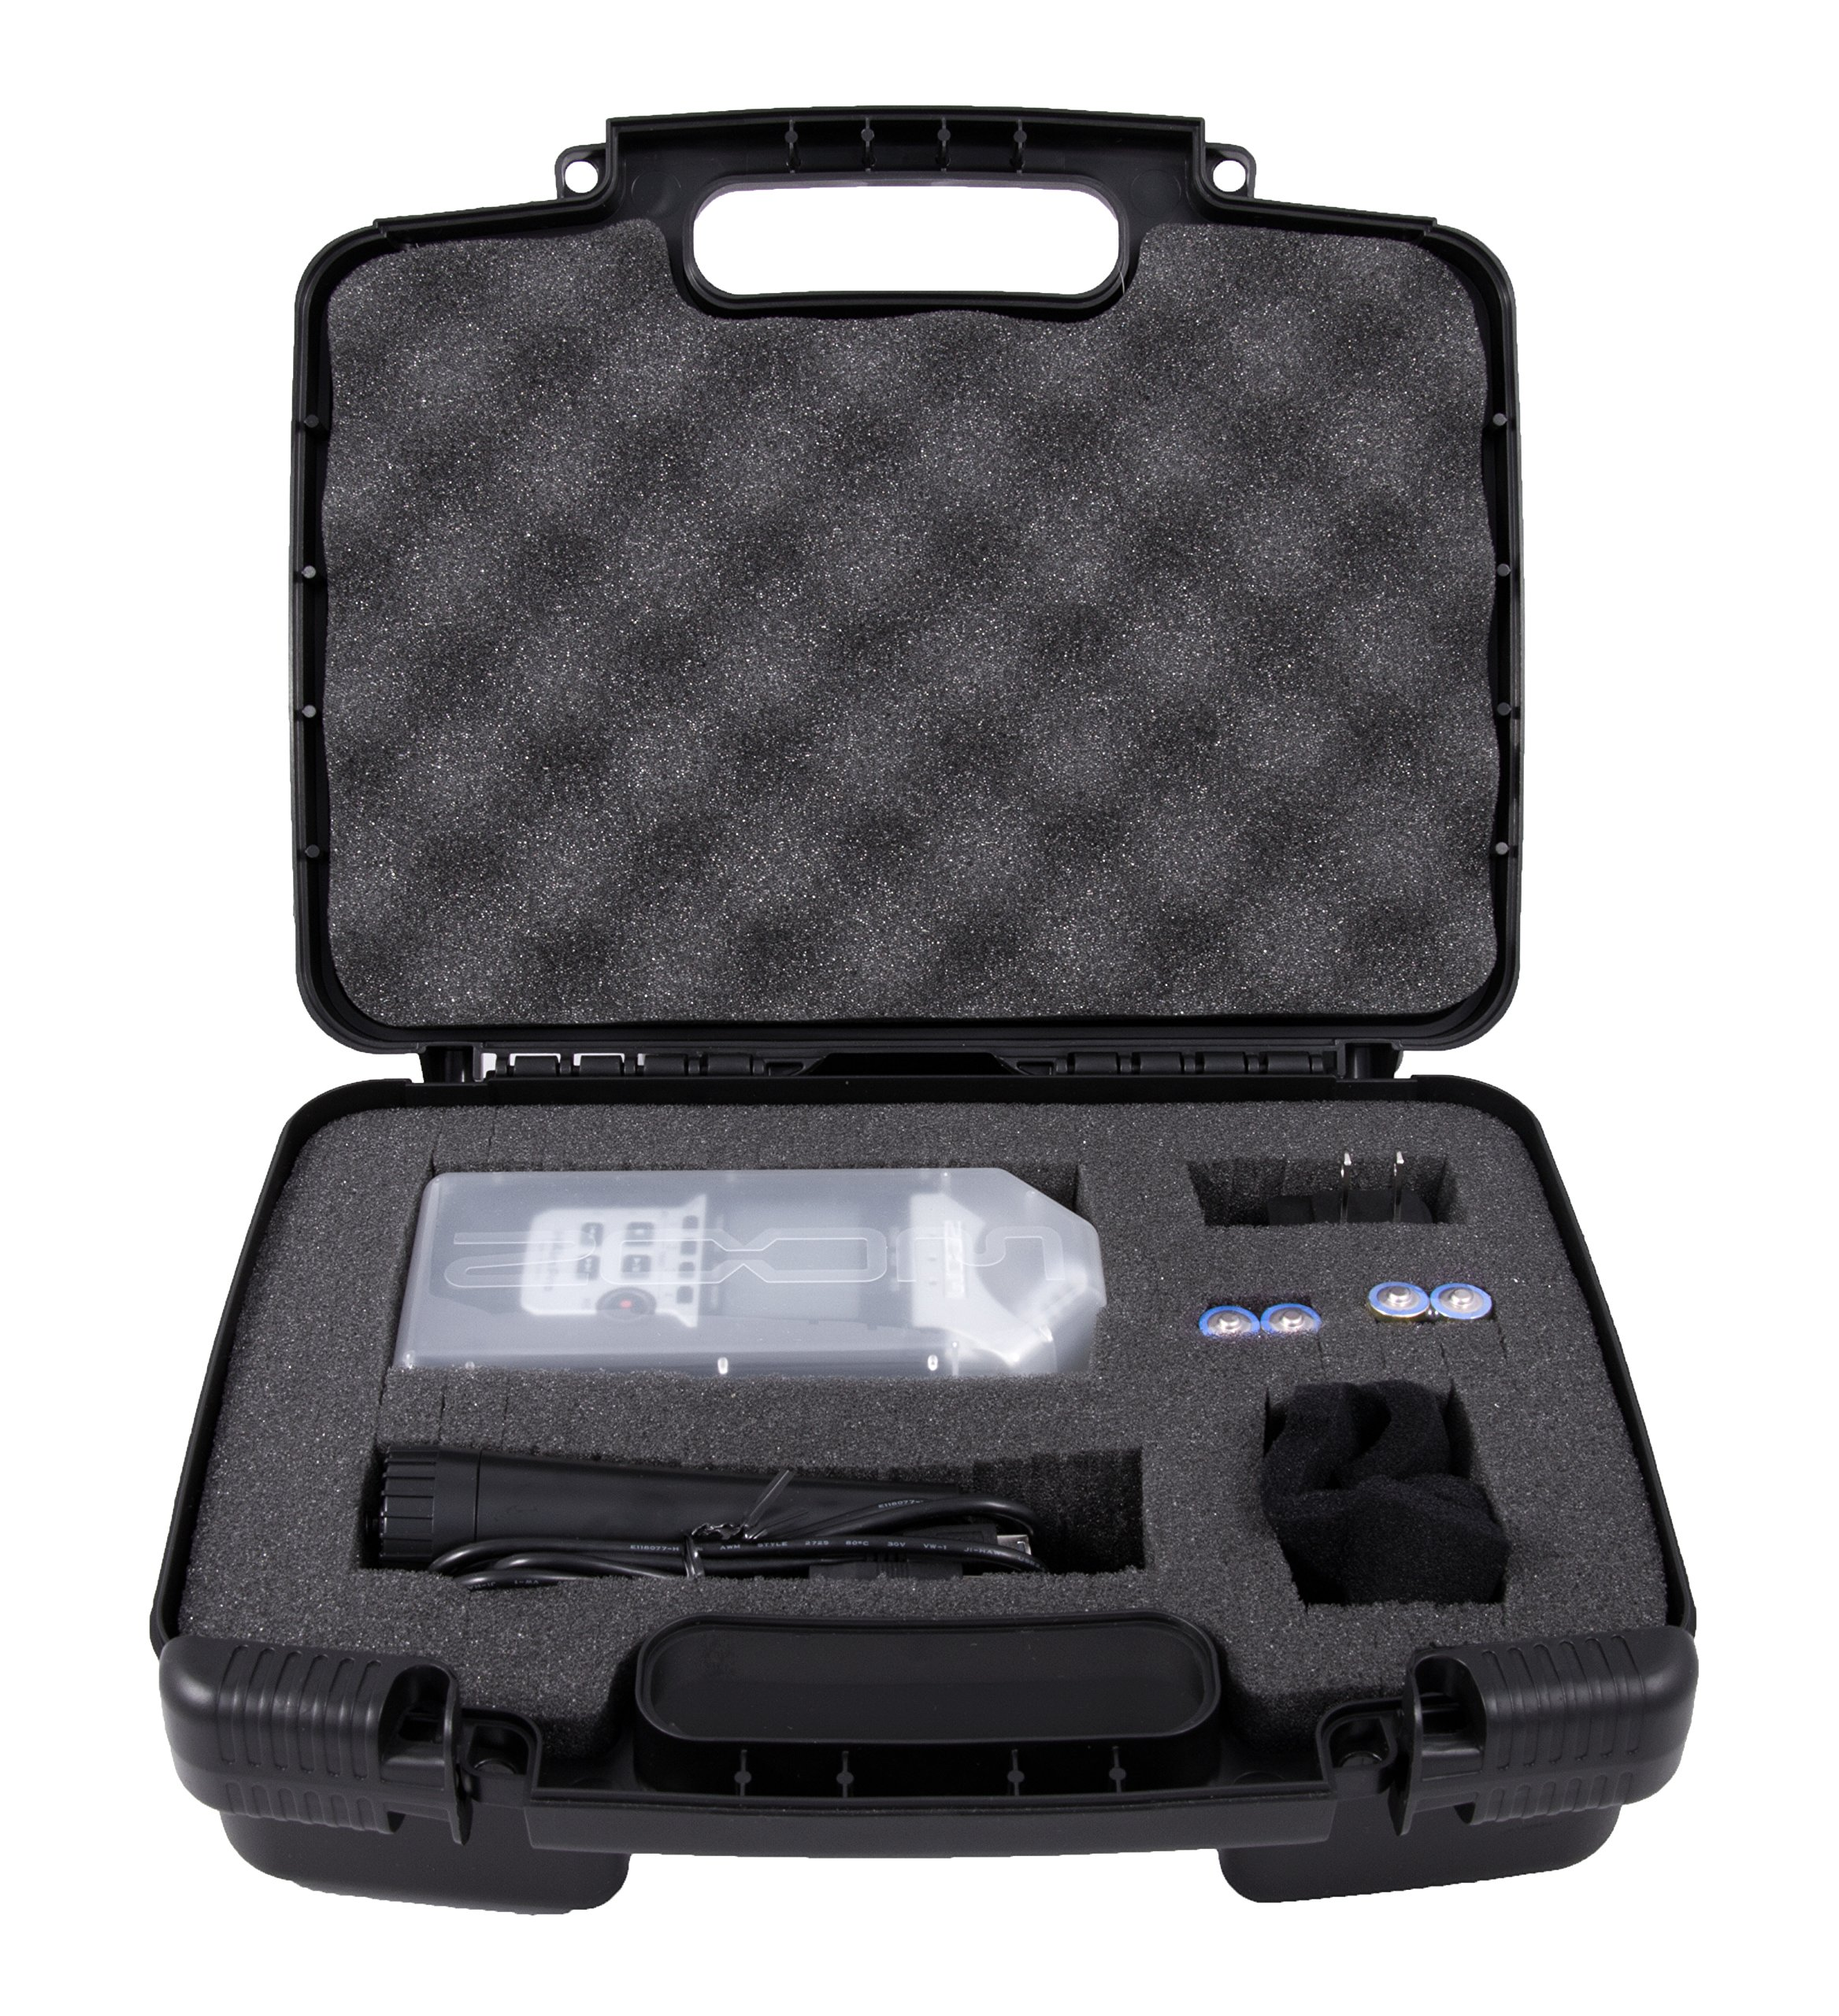 CASEMATIX Portable Recorder Carrying Travel Hard Case w/Dense Foam fits ZOOM H1, H2N, H5, H4N, H6, F8, Q8 Handy Music Recorders, Charger, Mic Tripod Adapter and Accessories